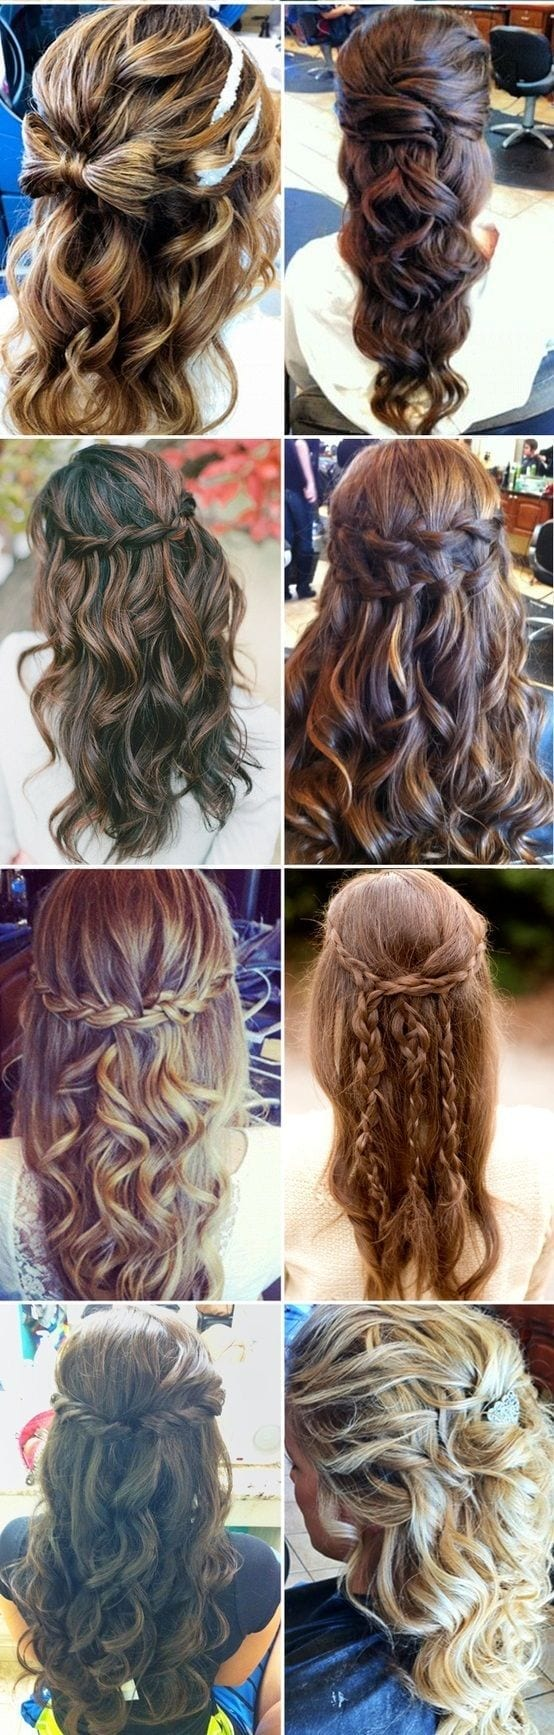 winter hairstyles for college girls (1)